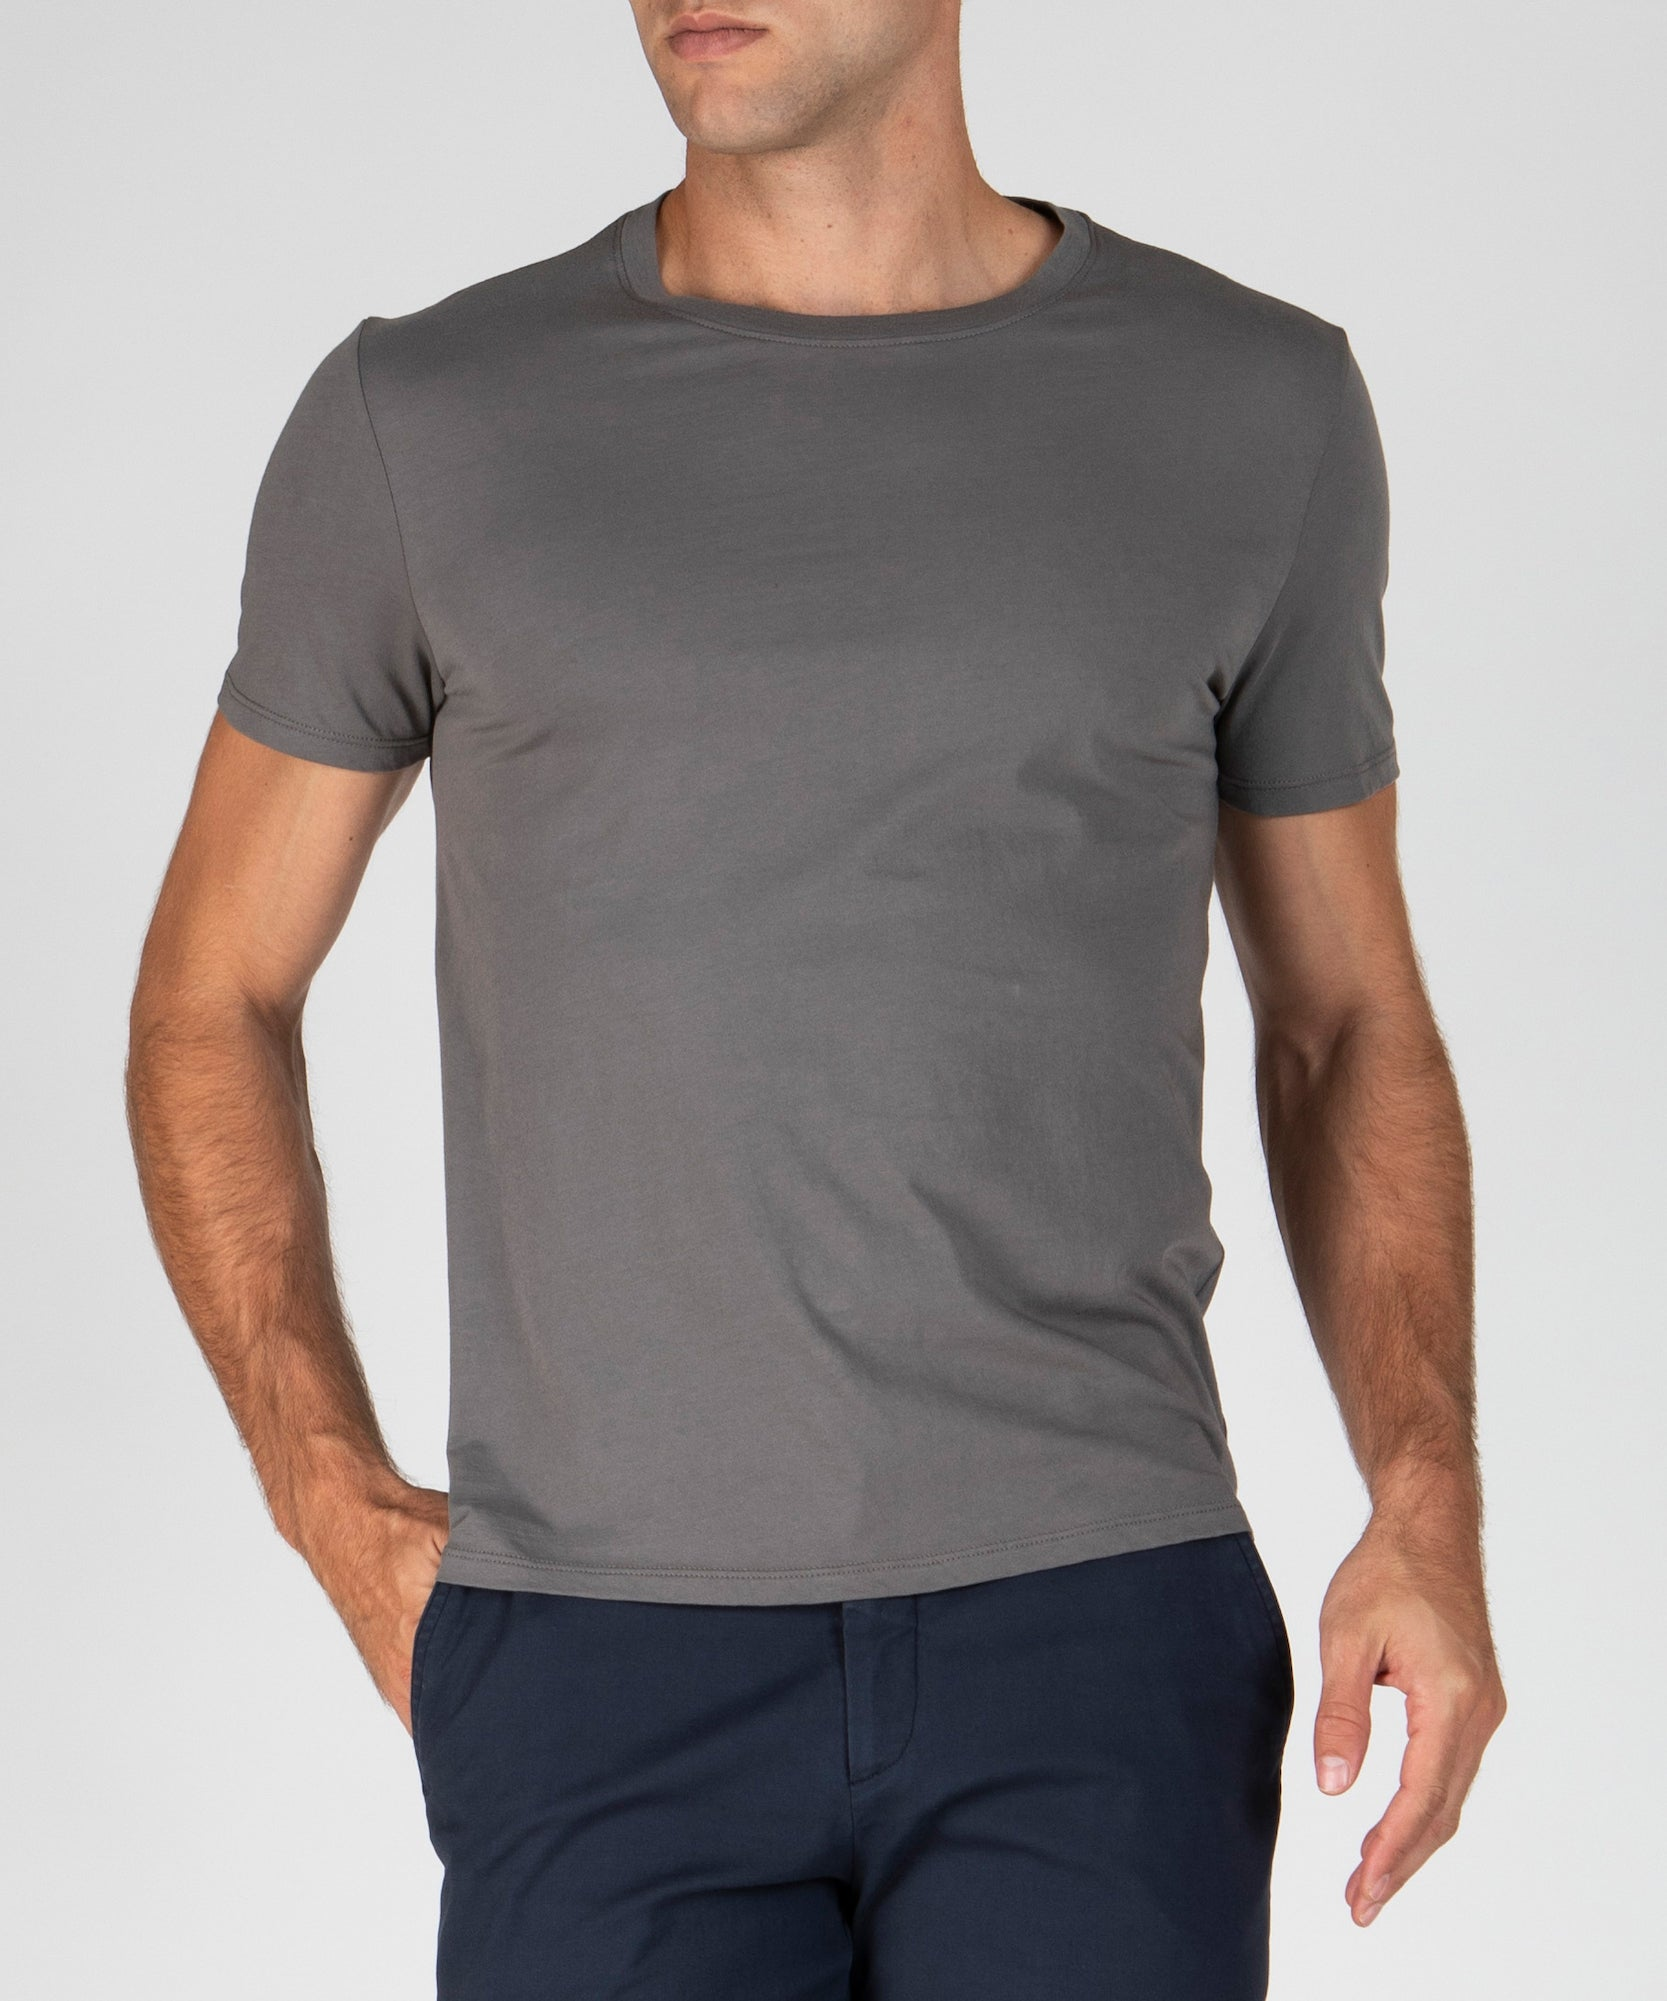 Granite Classic Jersey Crew Neck Tee - Men's Cotton Short Sleeve Tee by ATM Anthony Thomas Melillo